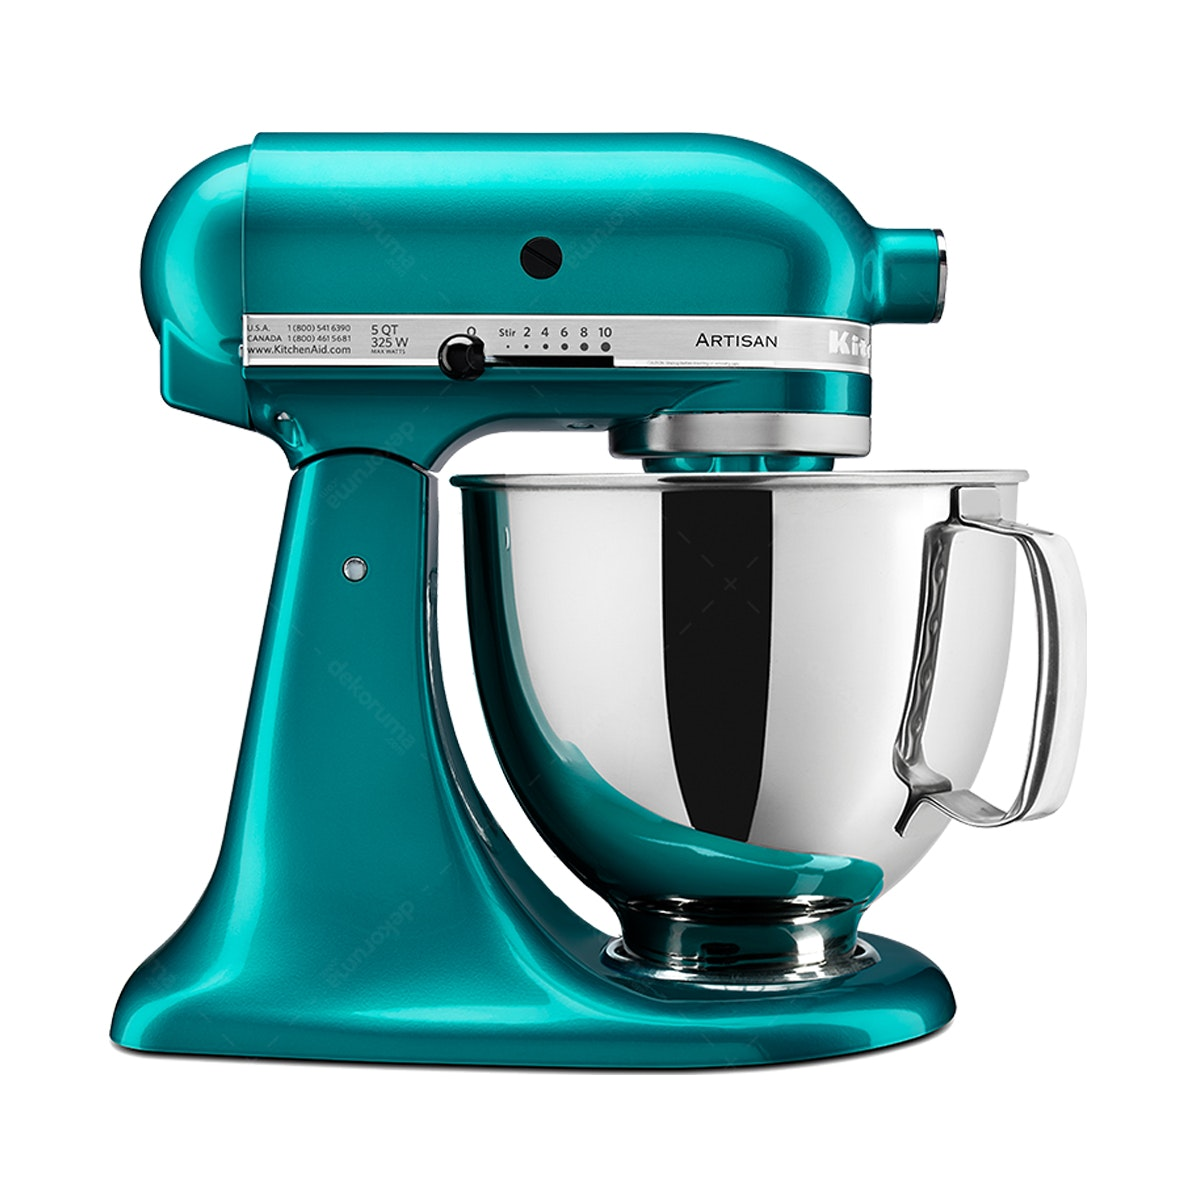 KitchenAid Artisan Series 4.8 L Stand Mixer (Series 5 Qt - Sea Glass)